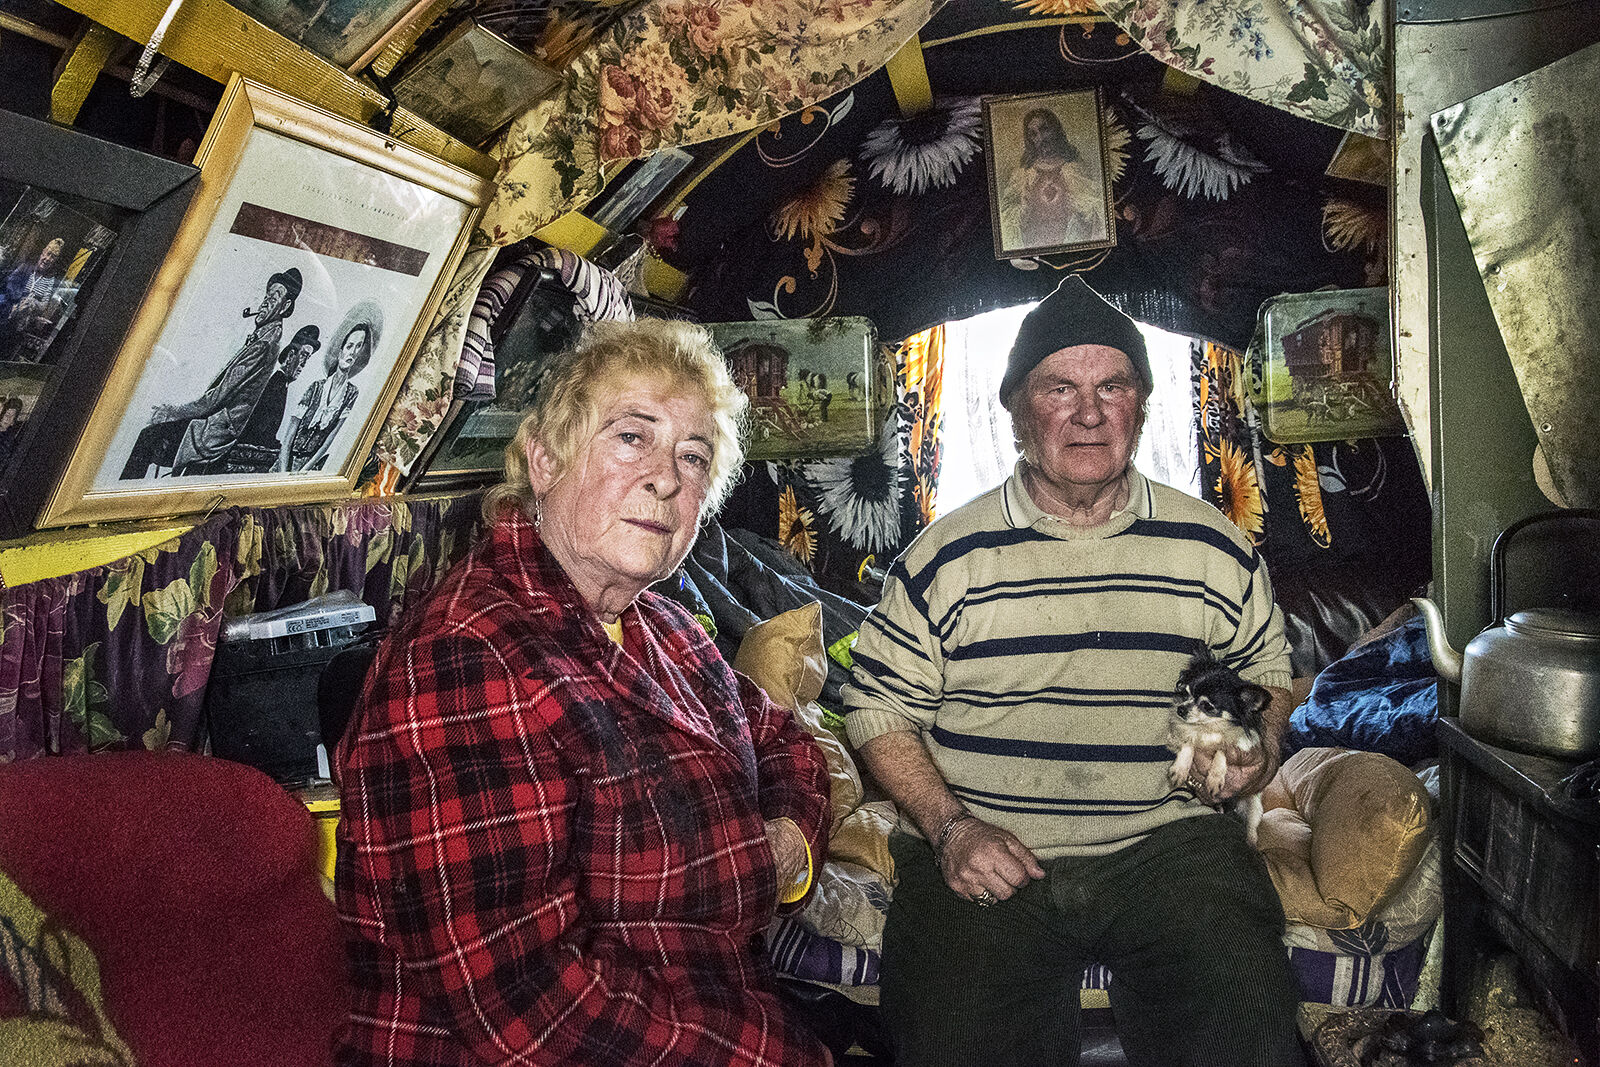 Nellie and Willie, roadside campsite, Tipperary, Ireland 2019